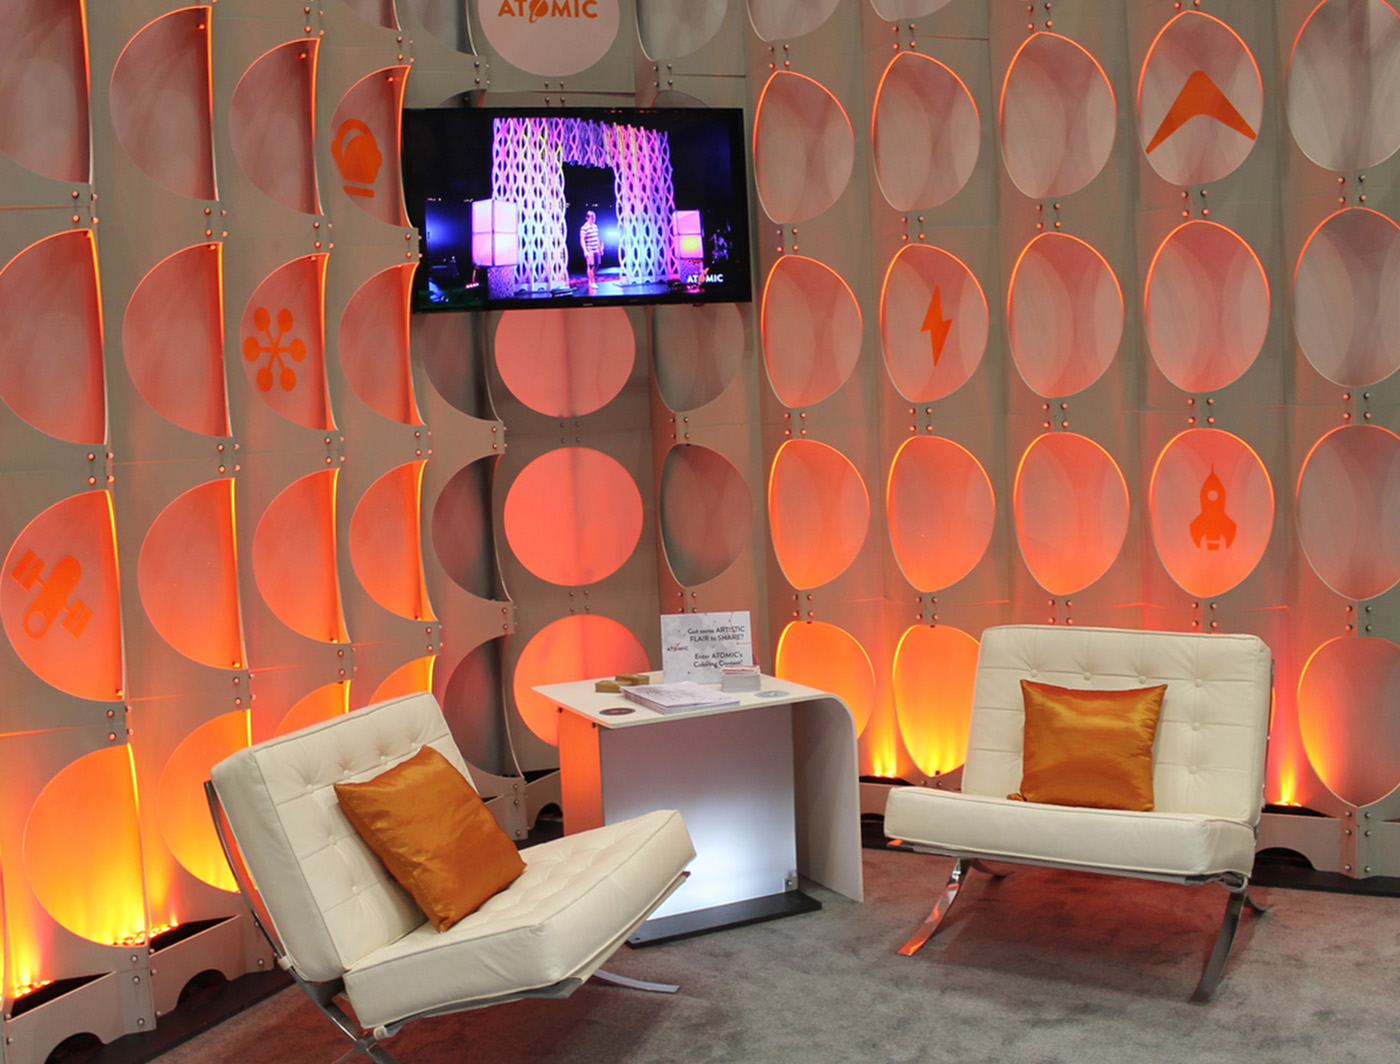 Flare FASTwall boosts this tradeshow booth